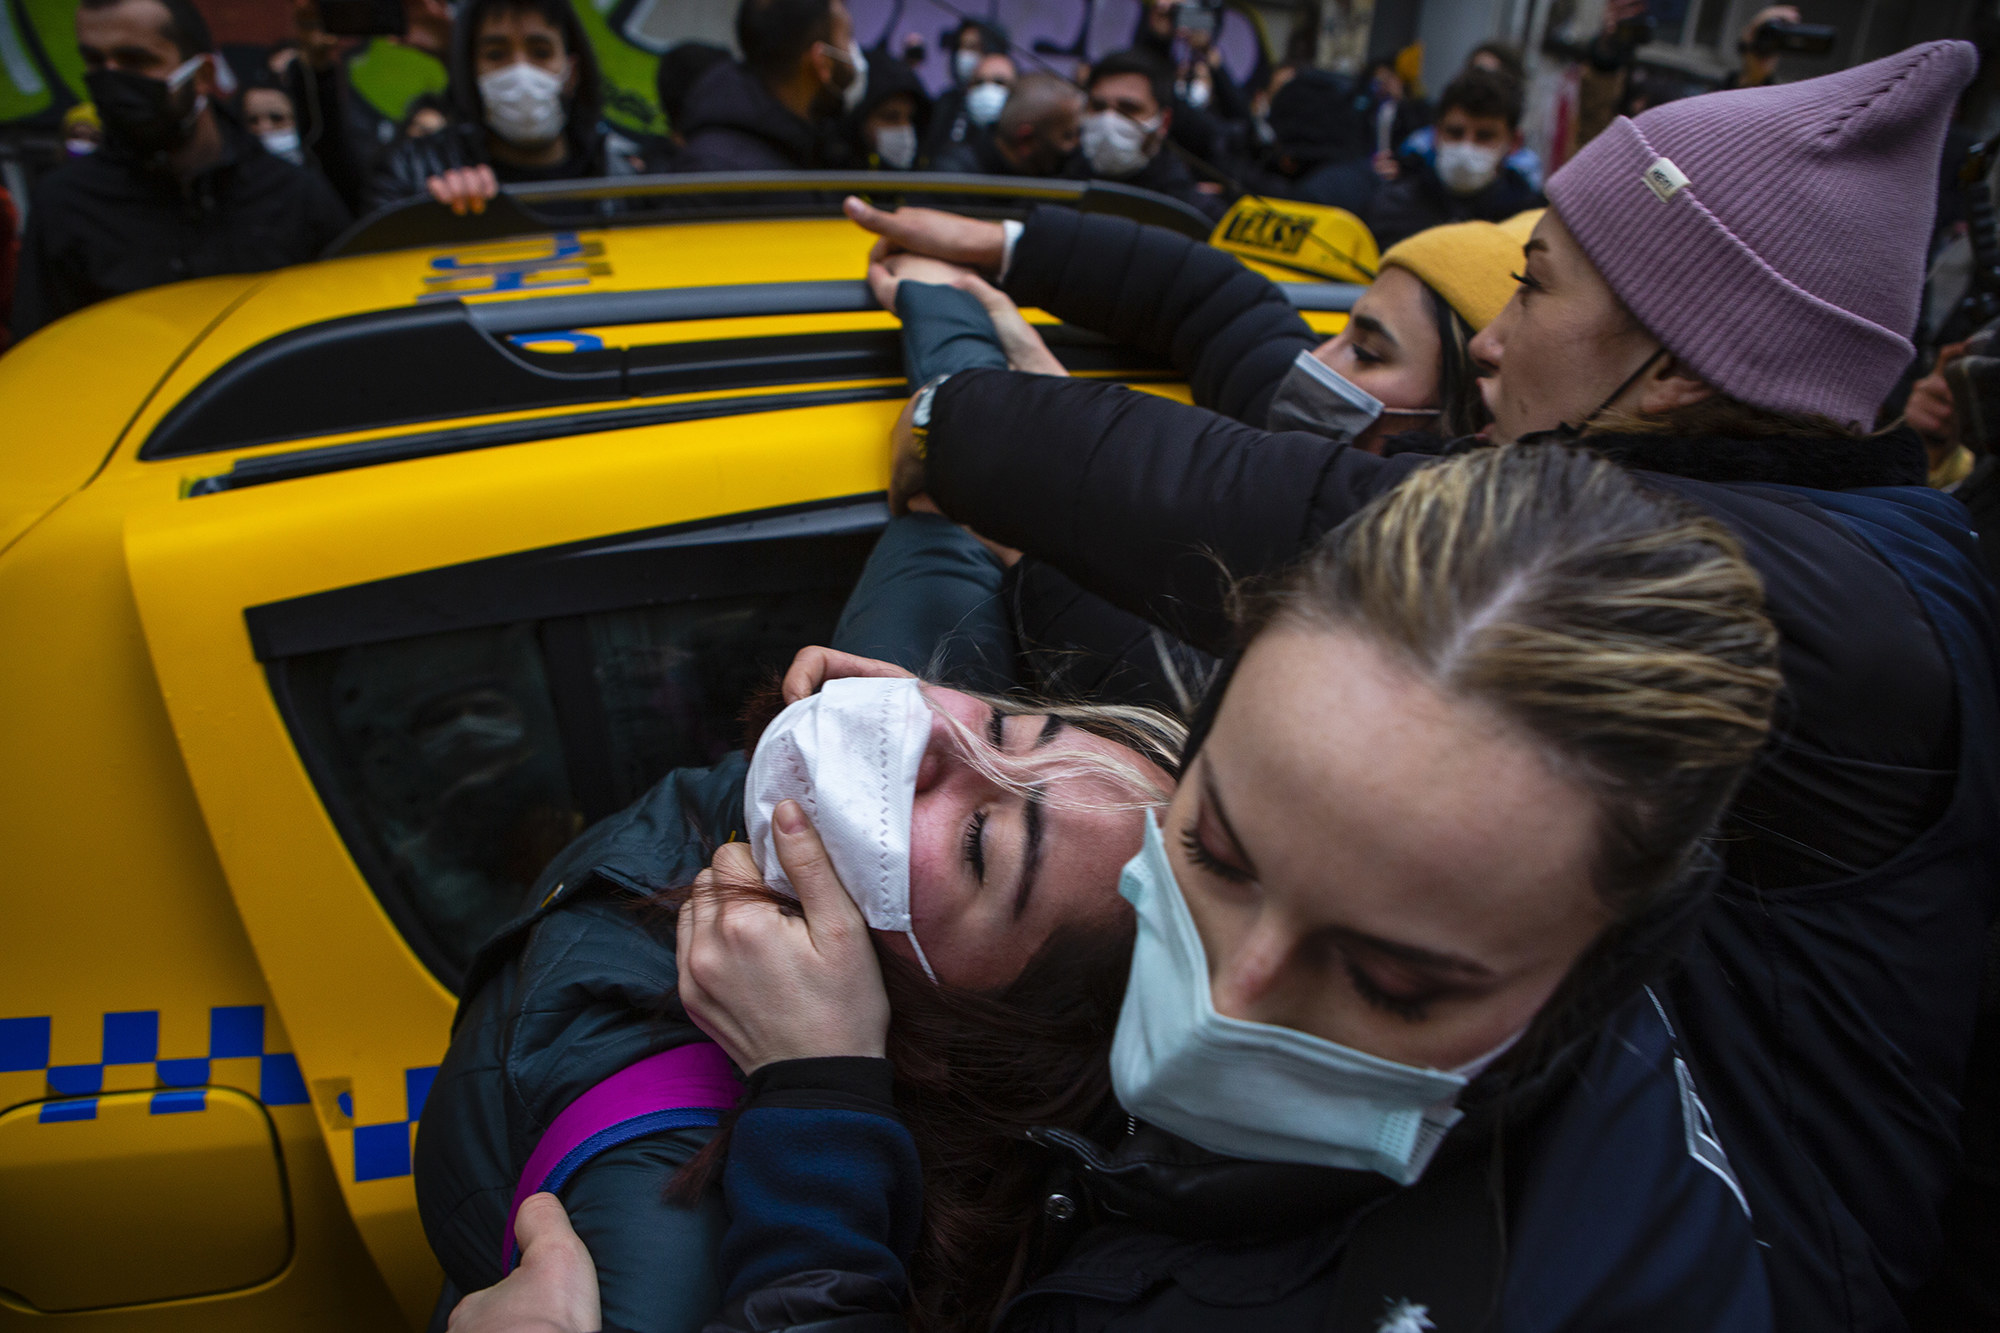 A protester is being pulled from a cab by their face